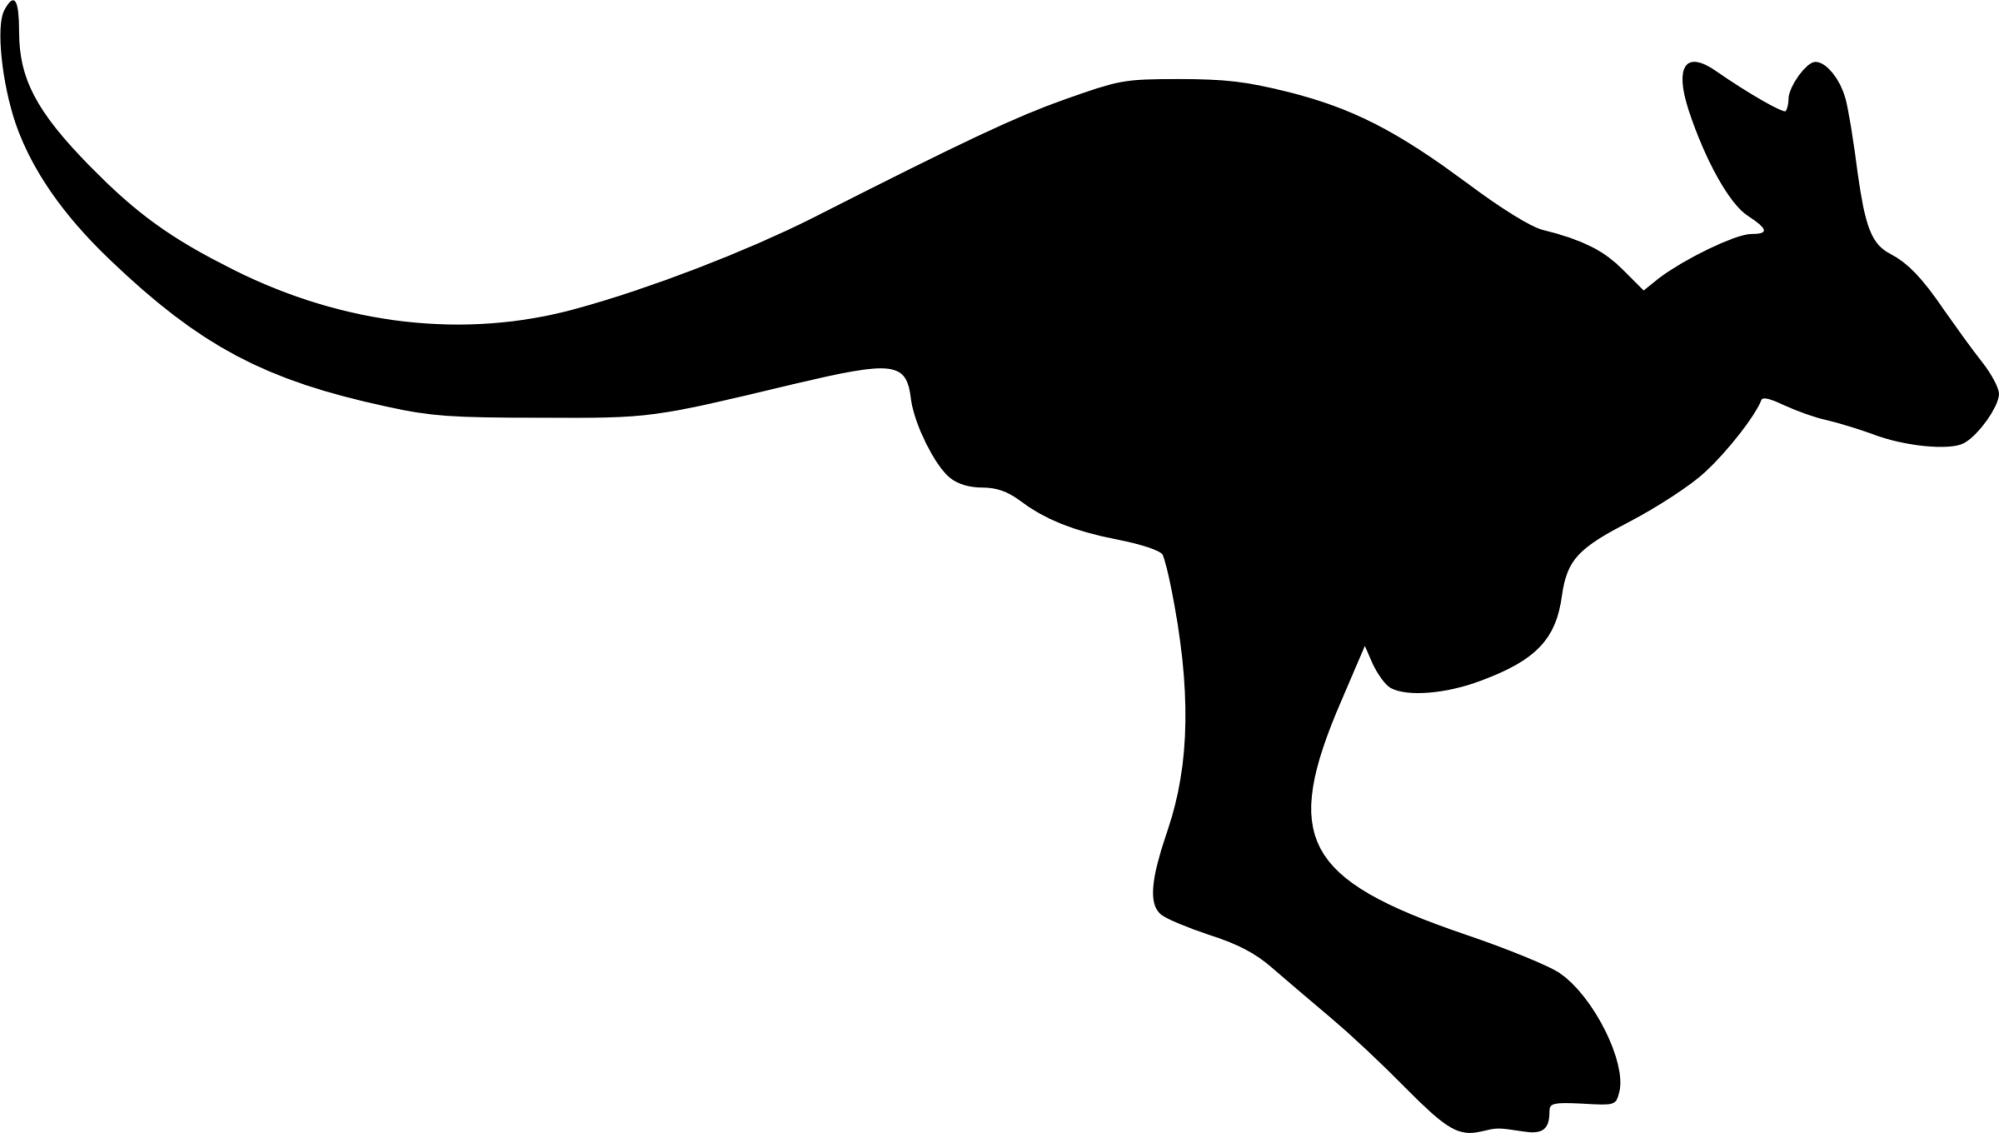 hight resolution of kangaroo silhouette